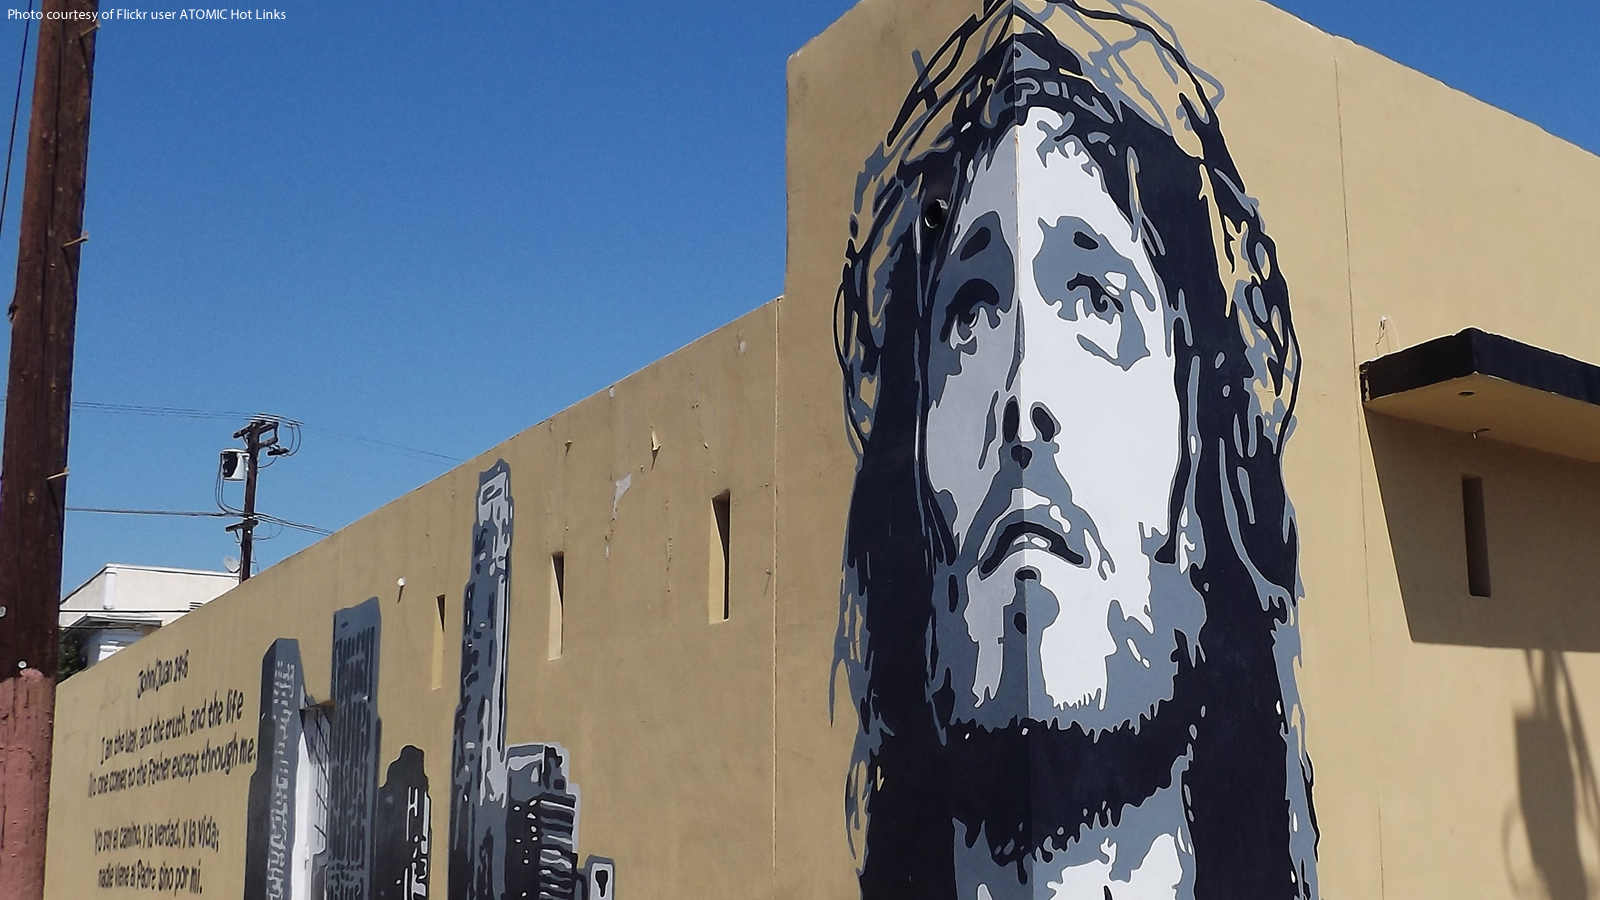 Building Mural featuring Jesus with a Crown of Thorns and a City Skyline